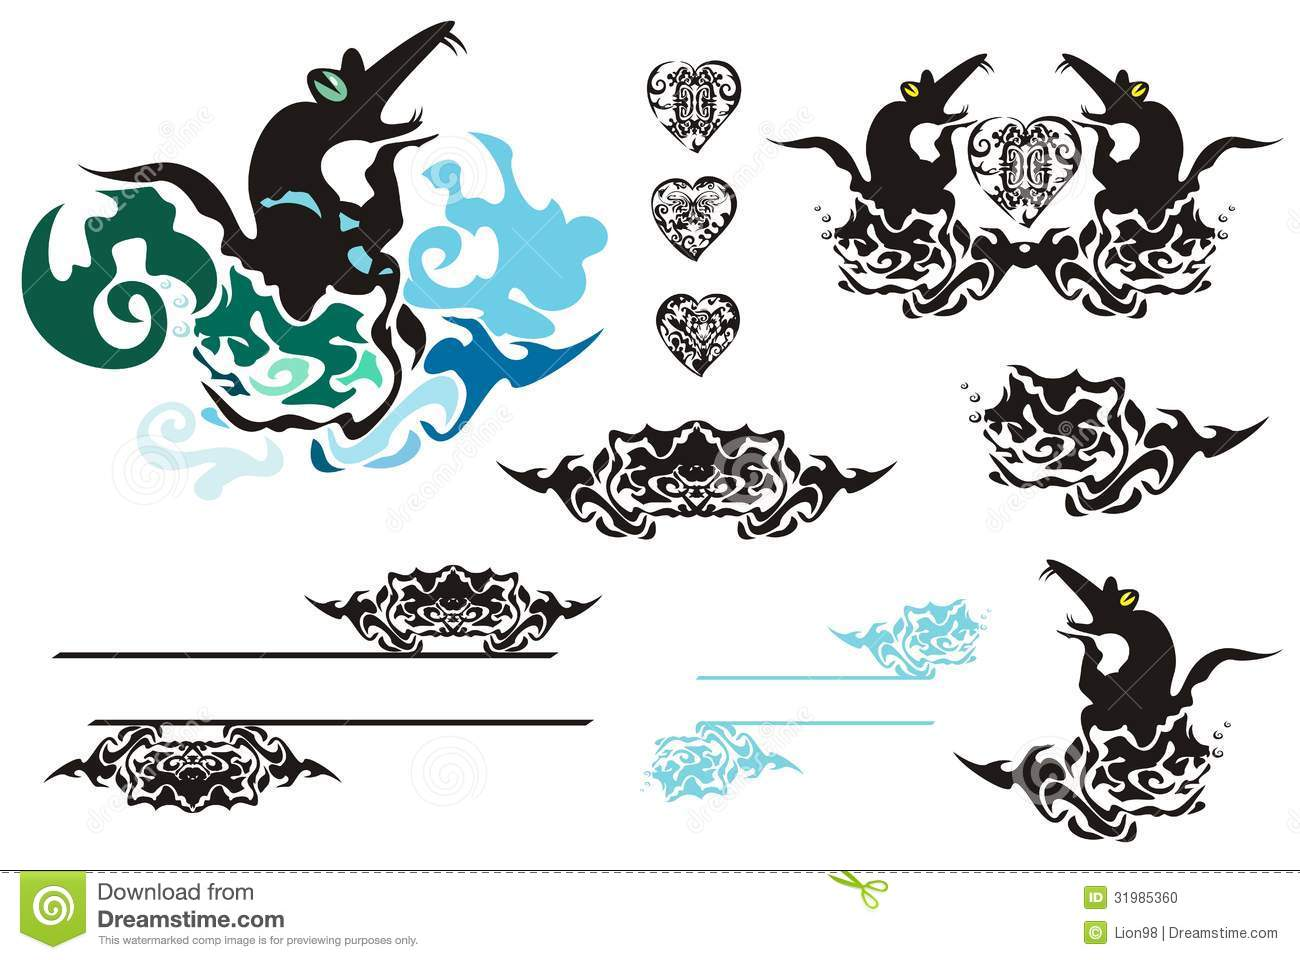 Design t shirt embroidery - Tribal Design Elements Rats Fishes Hearts Frame Stock Photo